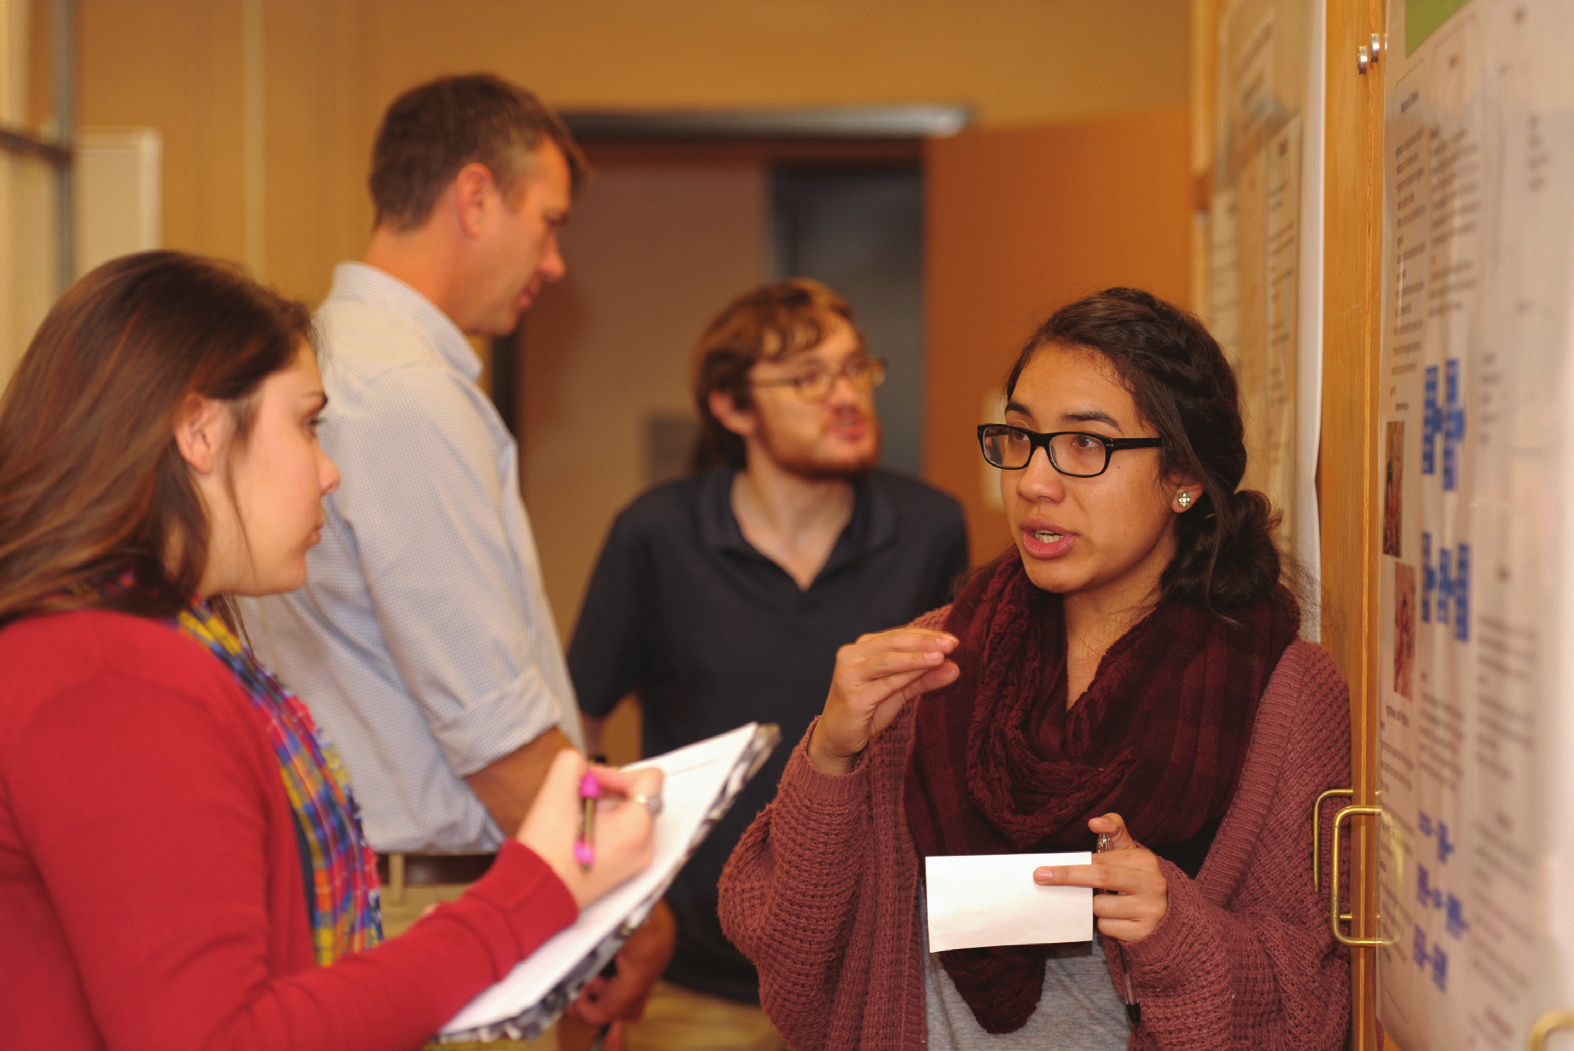 NMSU biology student Nubia Bermudez, right, presents her research poster to Darien Pruitt, left, during the lab component of an NMSU-HHMI undergraduate guided biological research class in Foster Hall. Student Matthew Griffin appears in the background presenting his poster to biology professor Tim Wright.